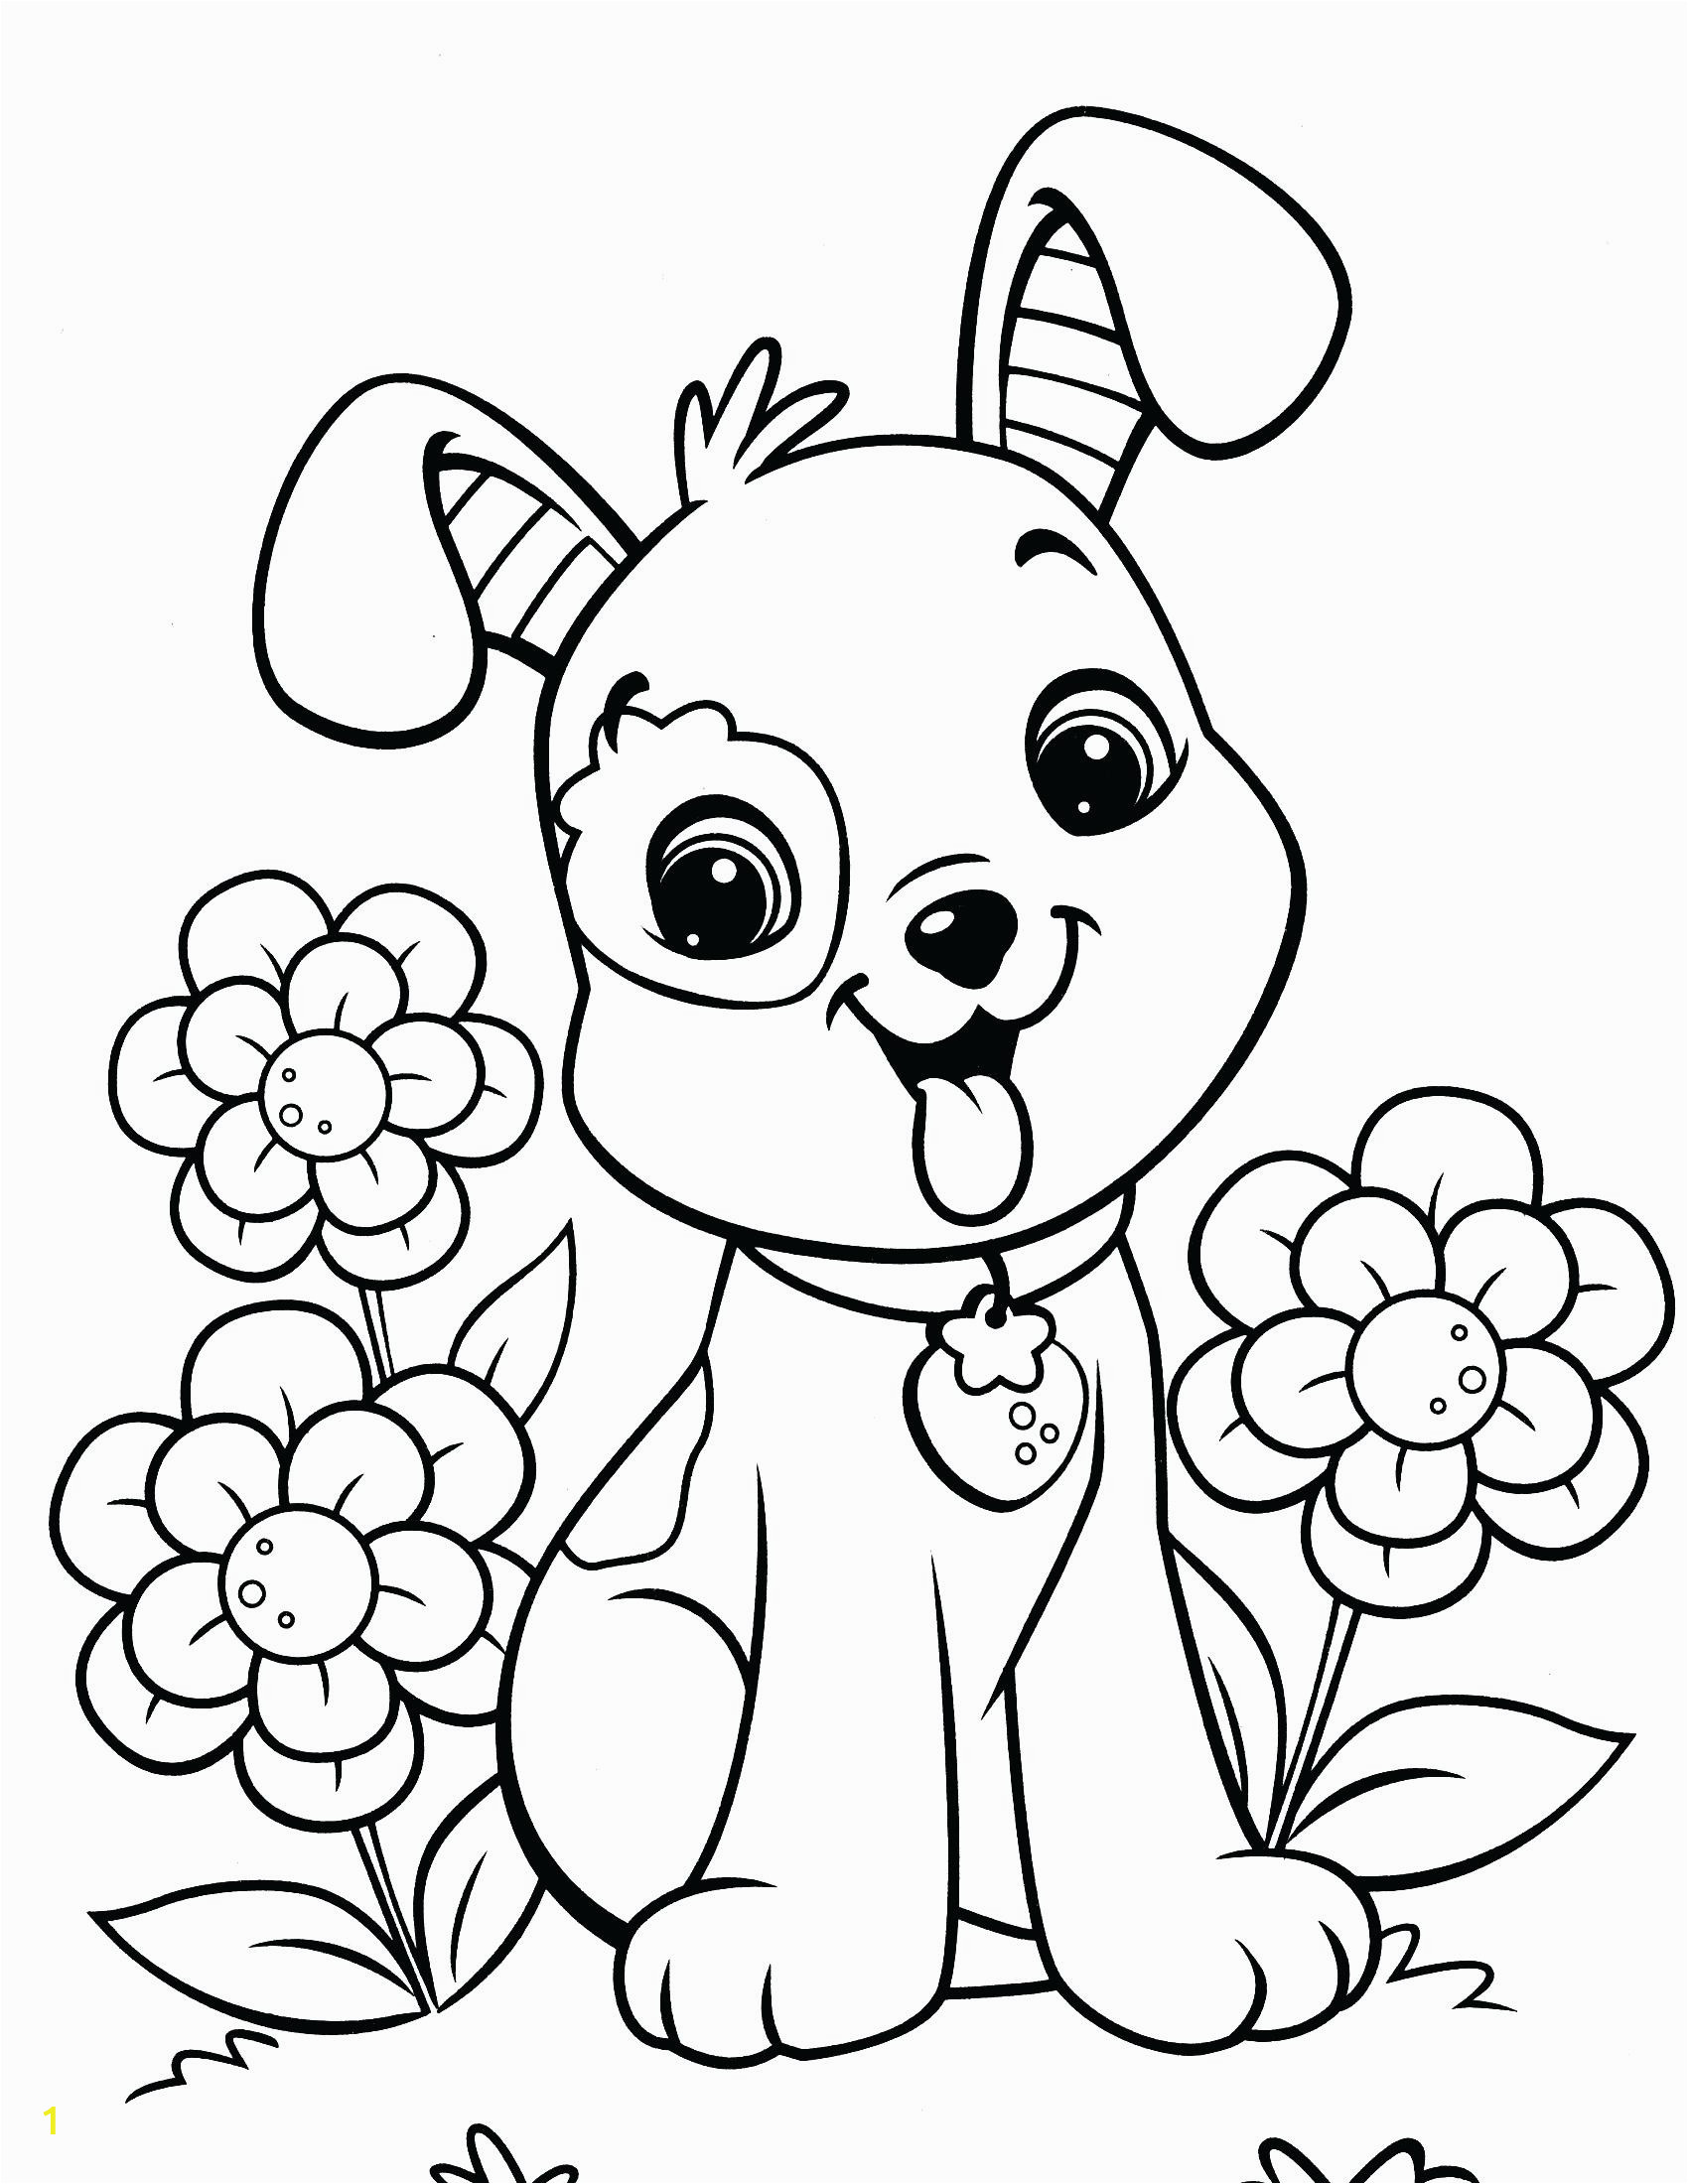 incredible preschool coloring pages free picture inspirations pets spartanprint co puppy beagle to print printable pictures of puppies and kittens color boxer for kids